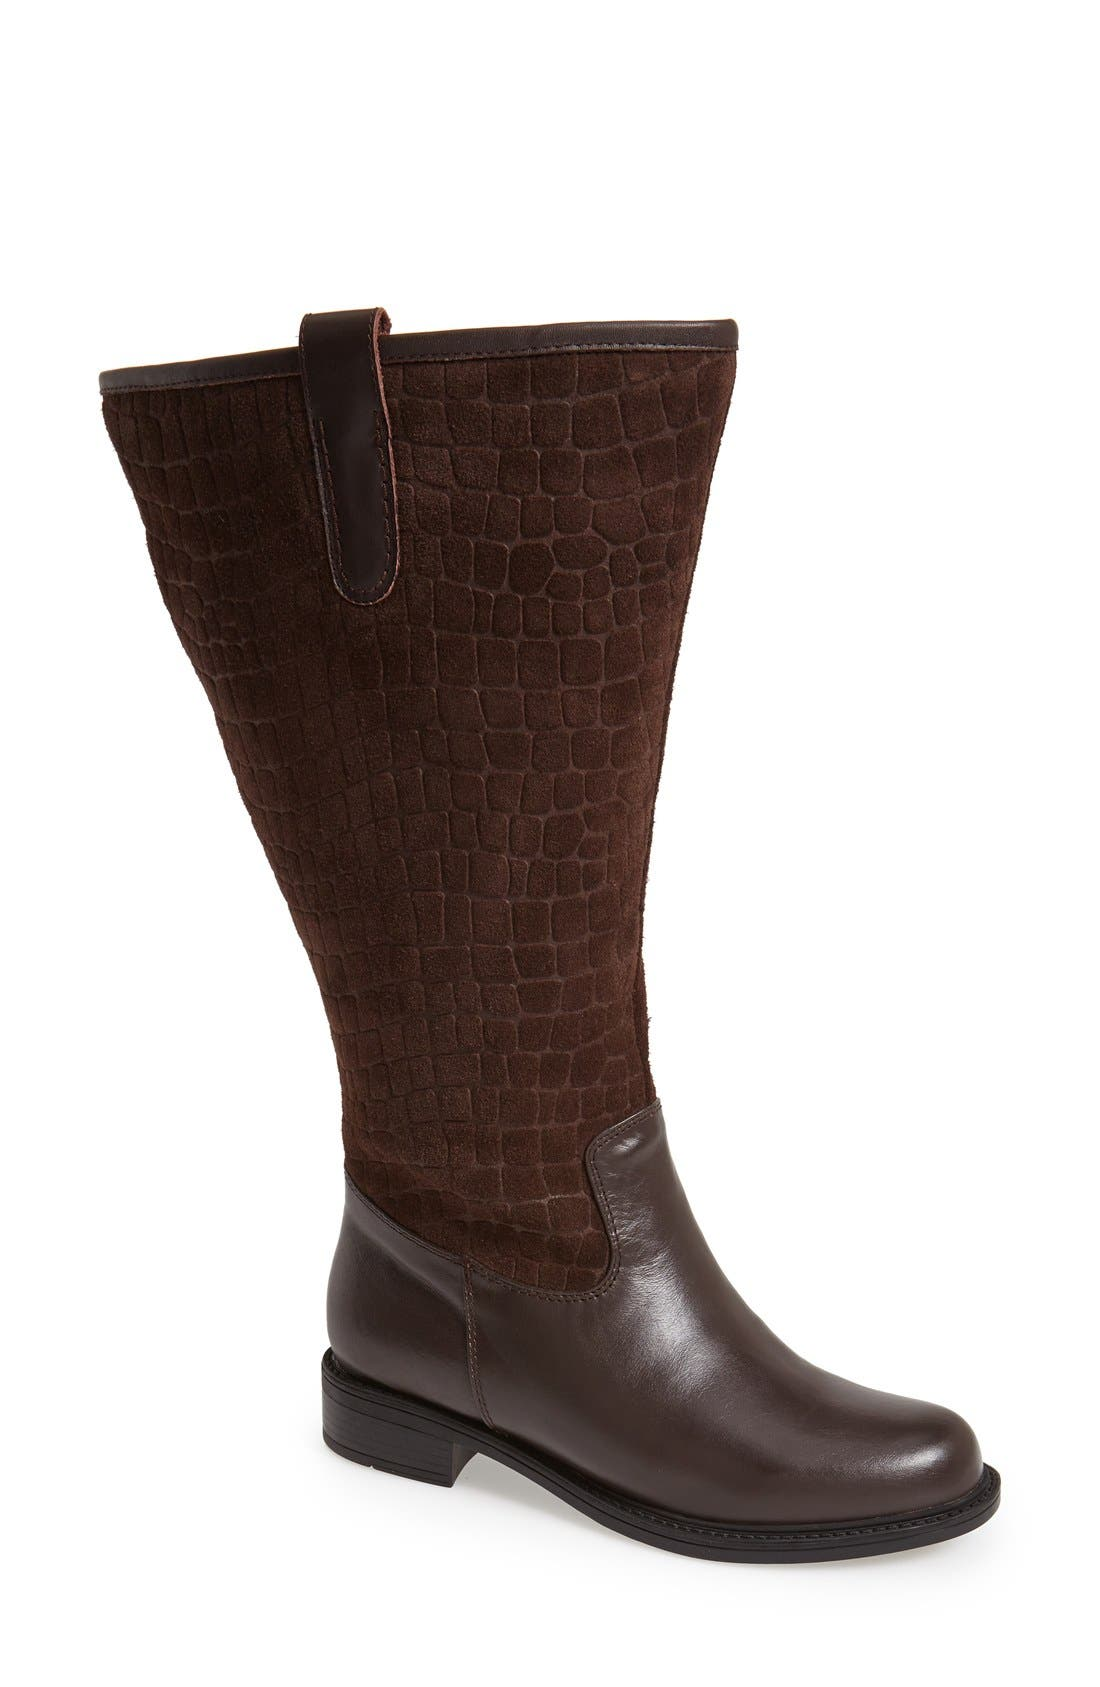 'Best' Calfskin Leather & Suede Boot,                         Main,                         color,